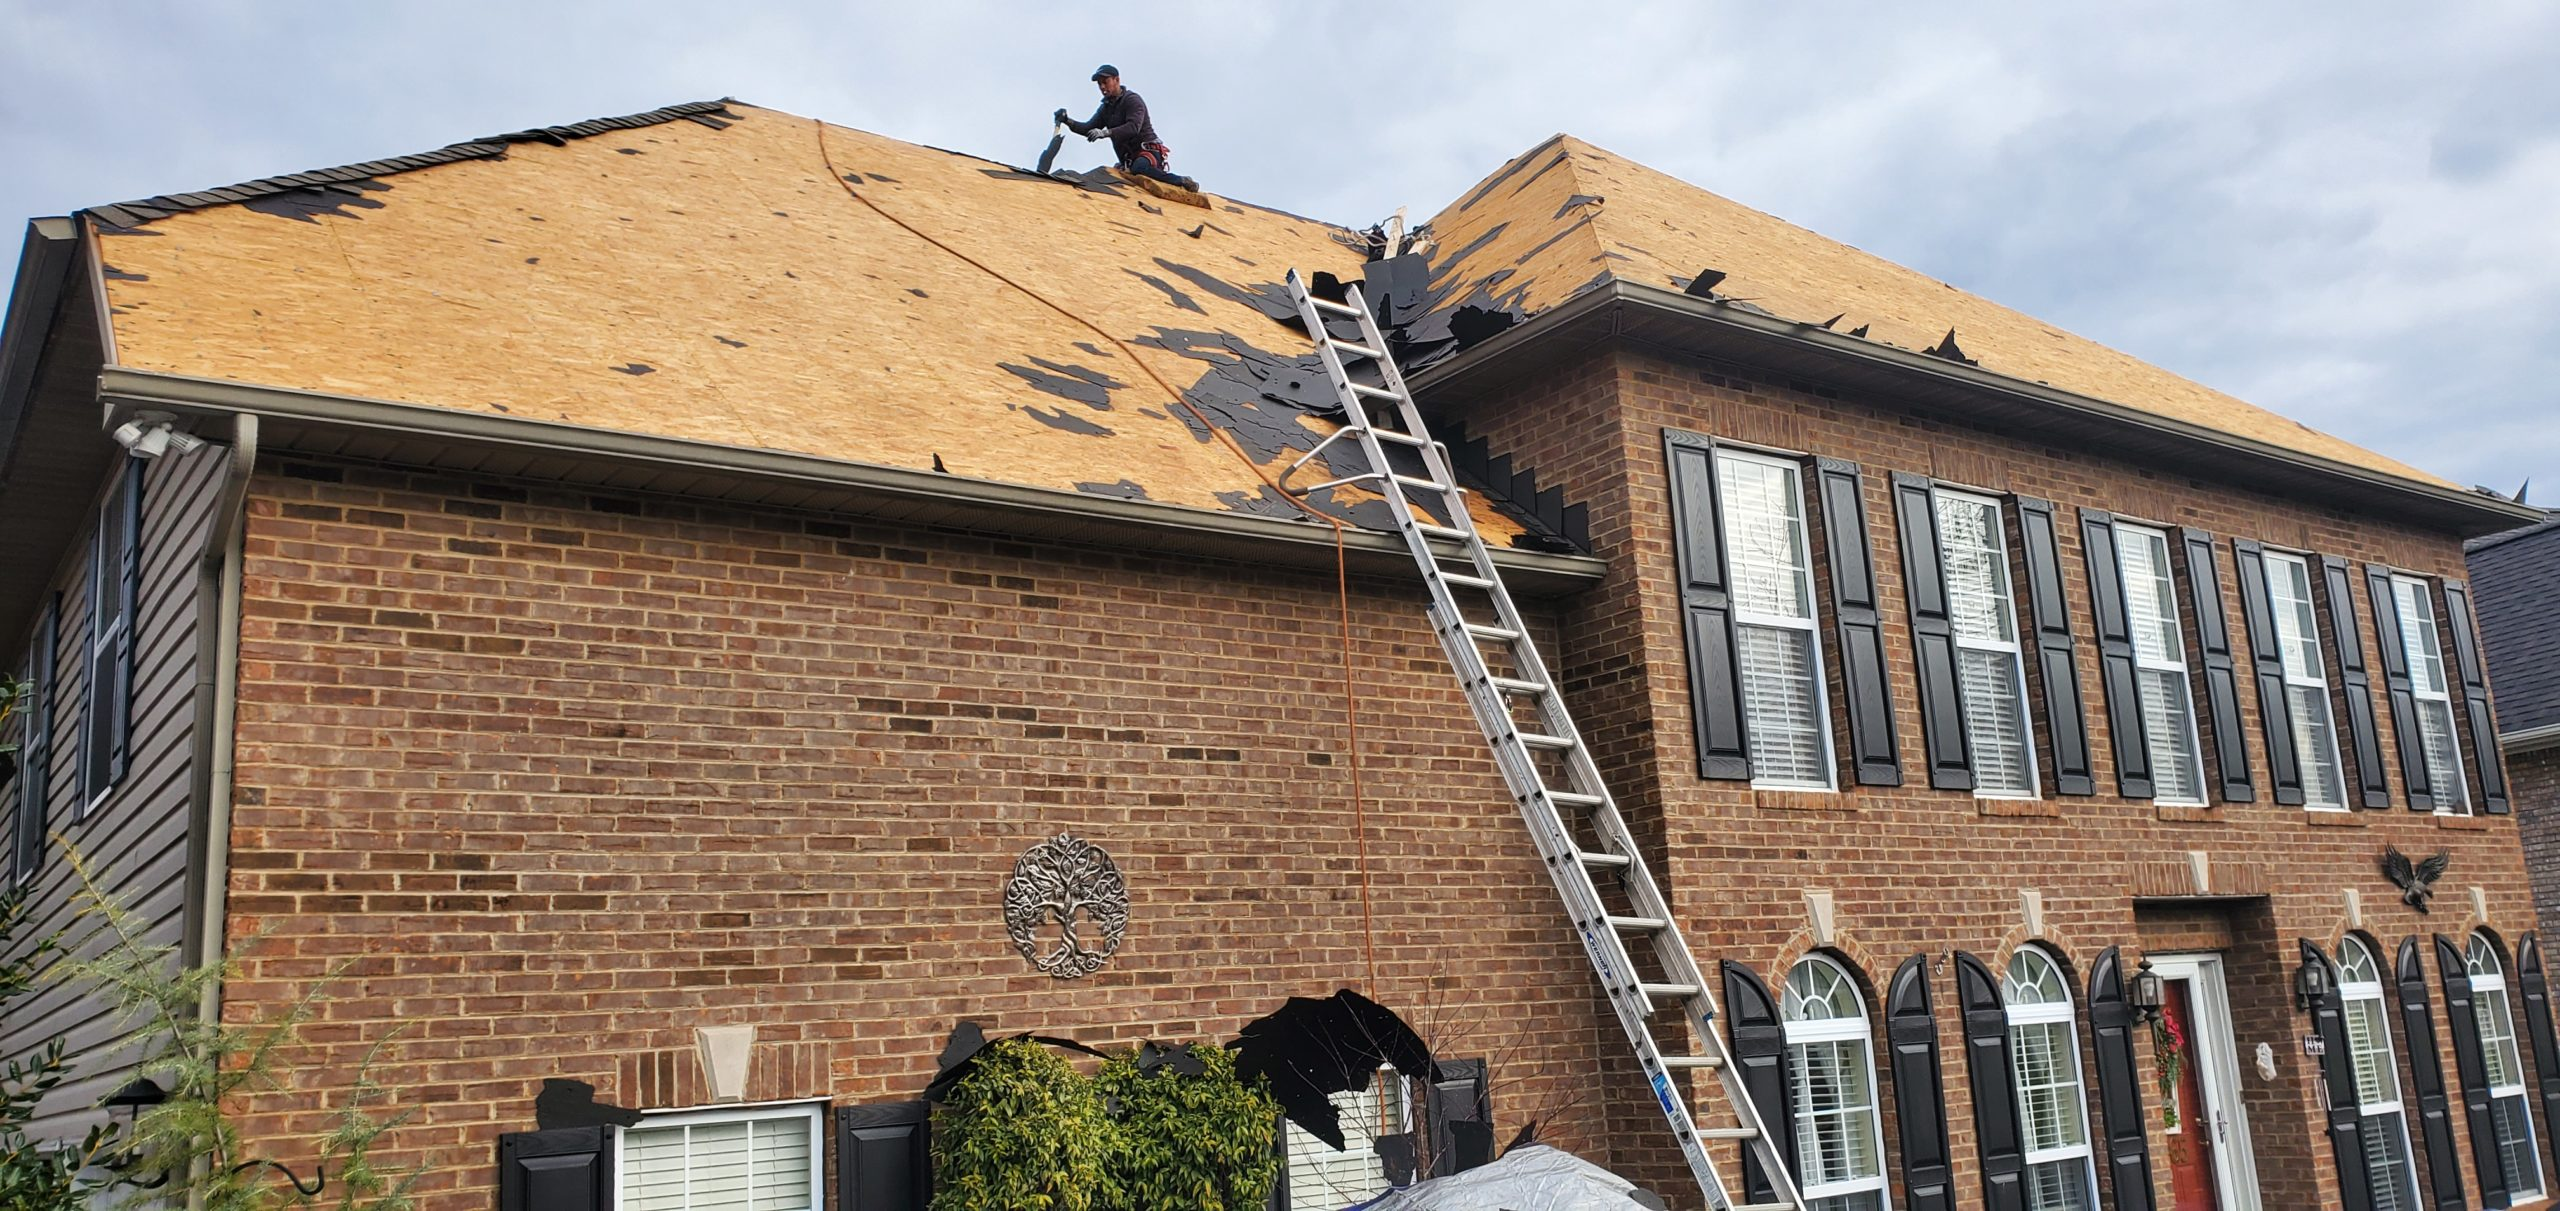 This is a view of the roof from the ground. Shingles have been removed.